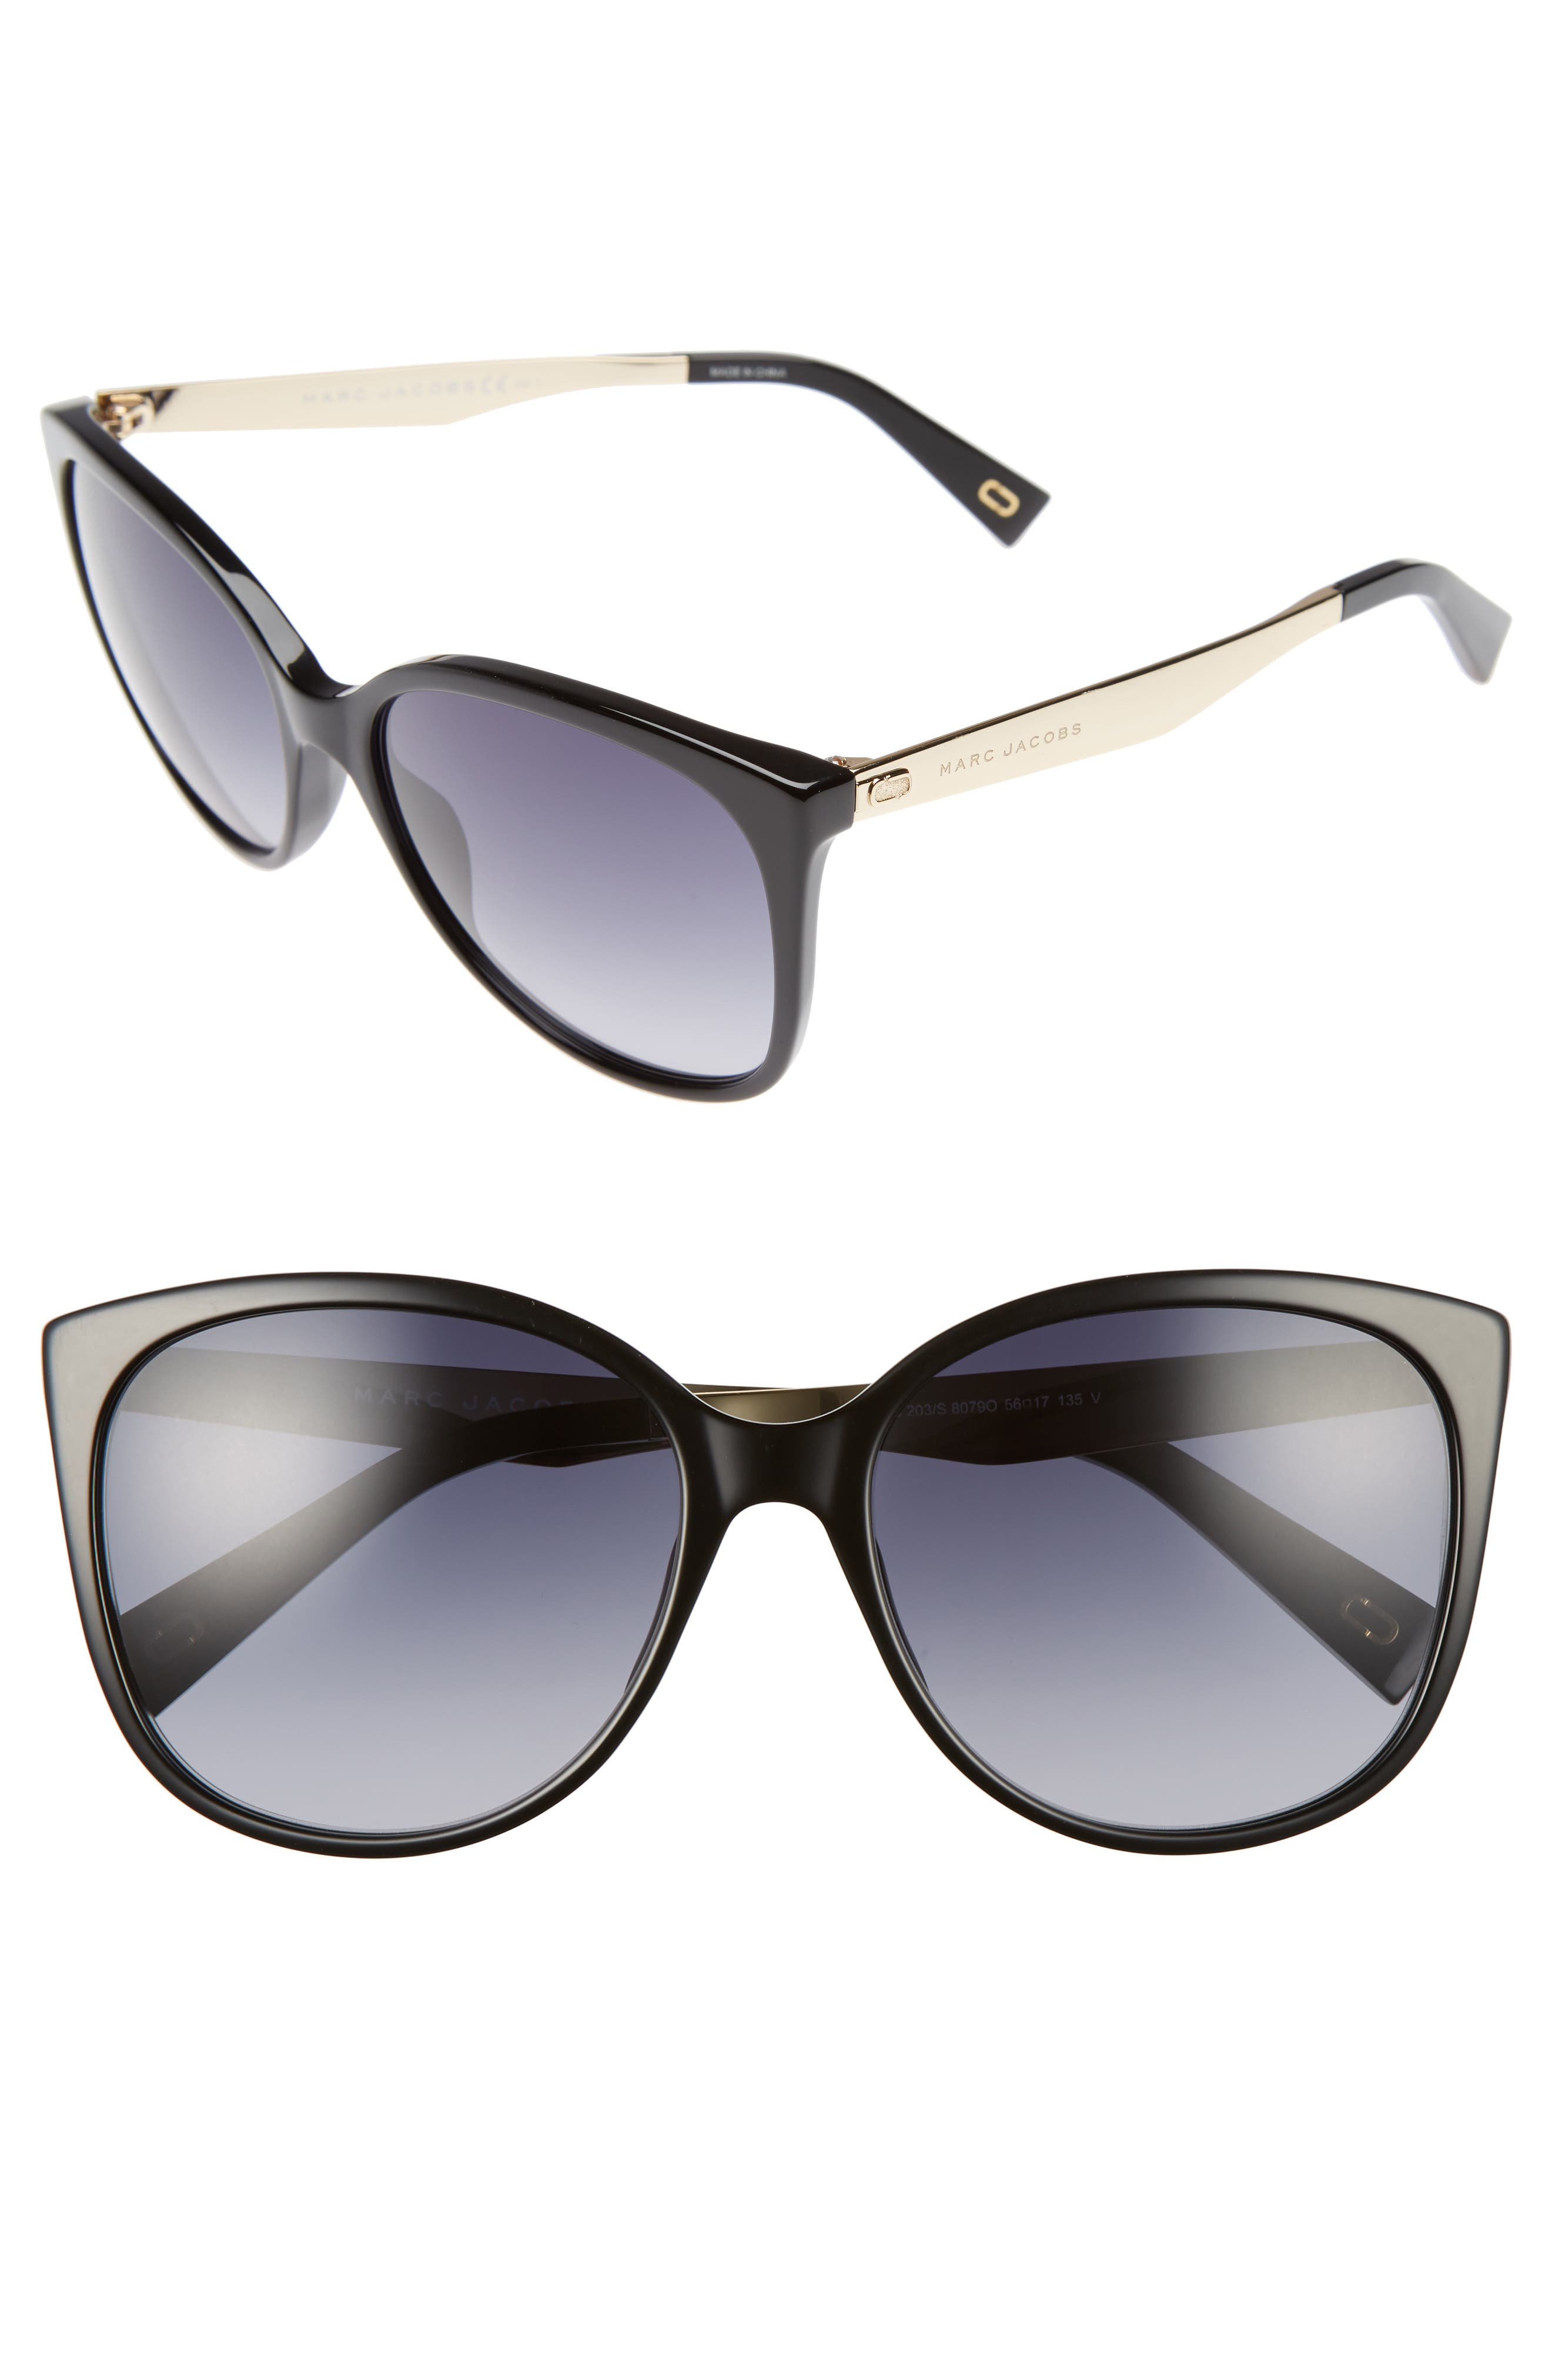 Alternate Image 1 Selected - MARC JACOBS 56mm Gradient Lens Butterfly Sunglasses